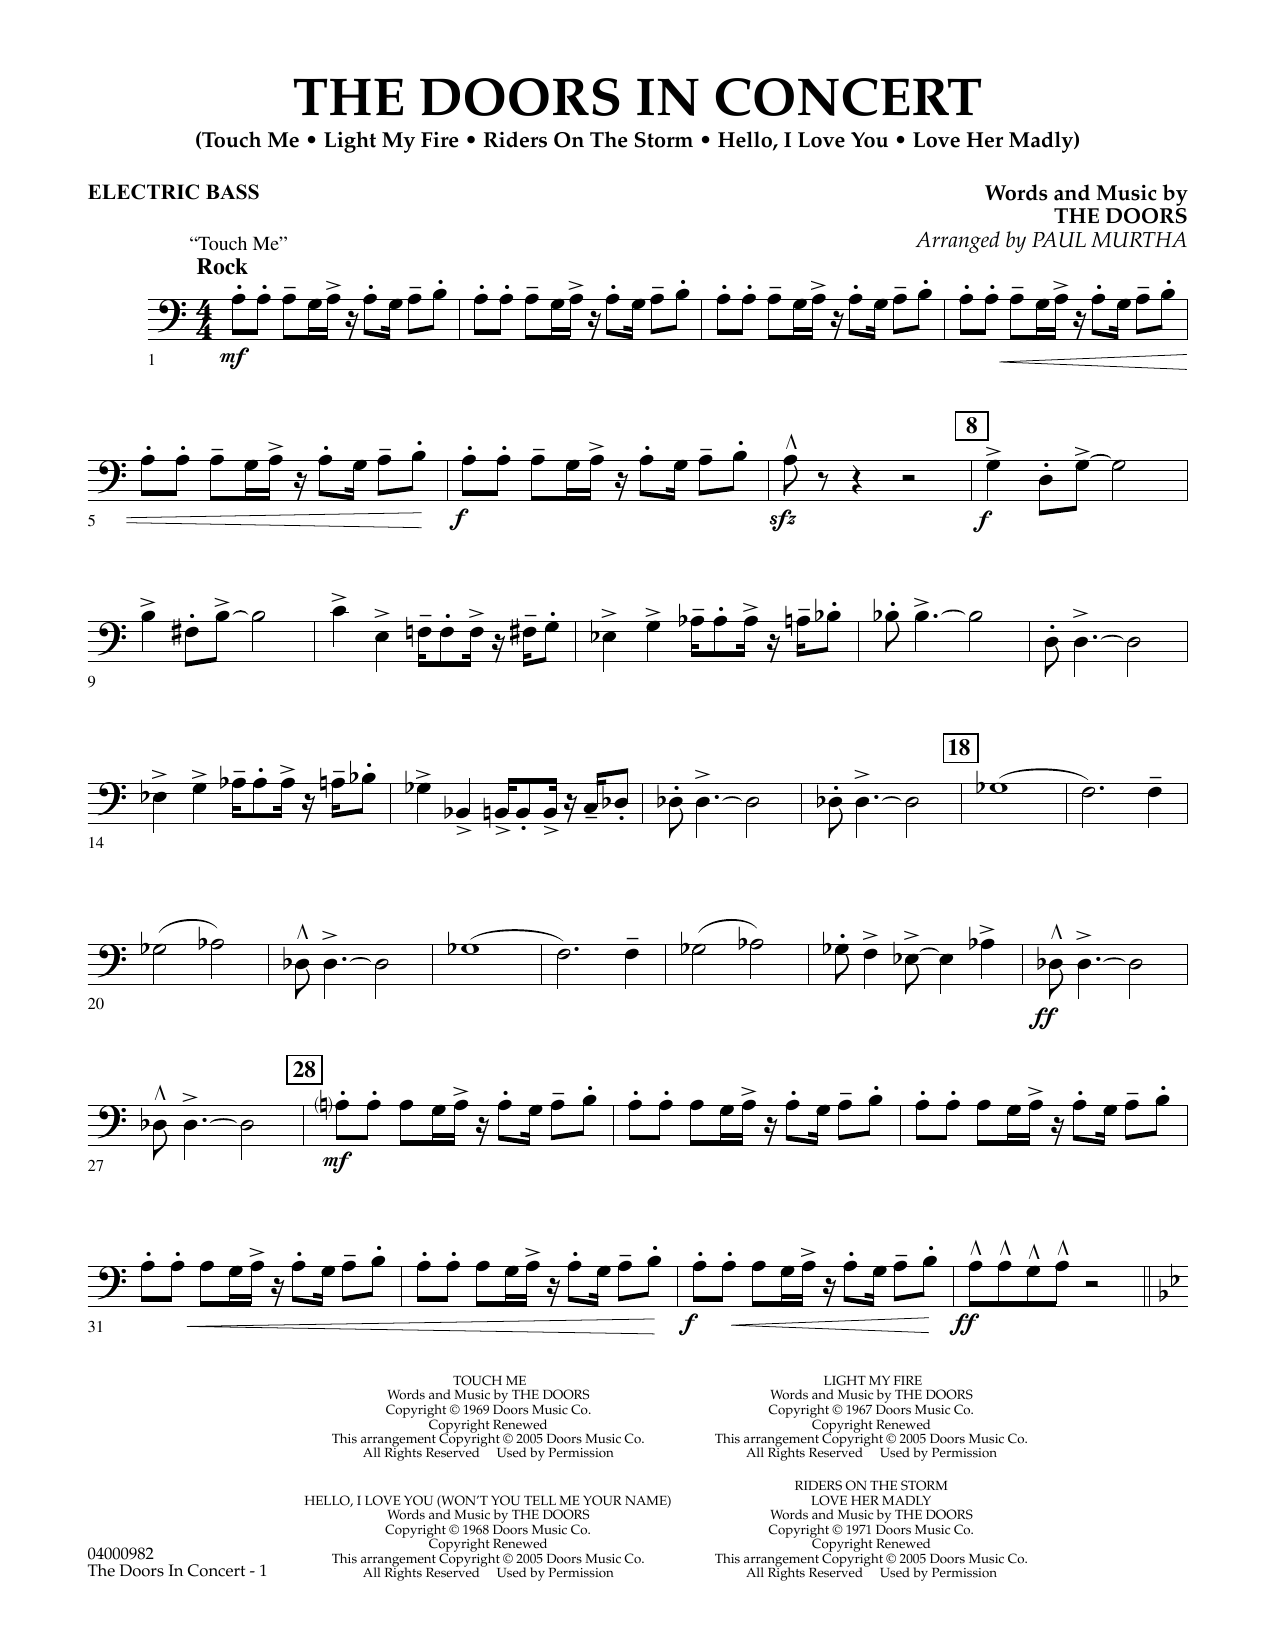 The Doors The Doors in Concert (arr. Paul Murtha) - Electric Bass sheet music notes and chords. Download Printable PDF.